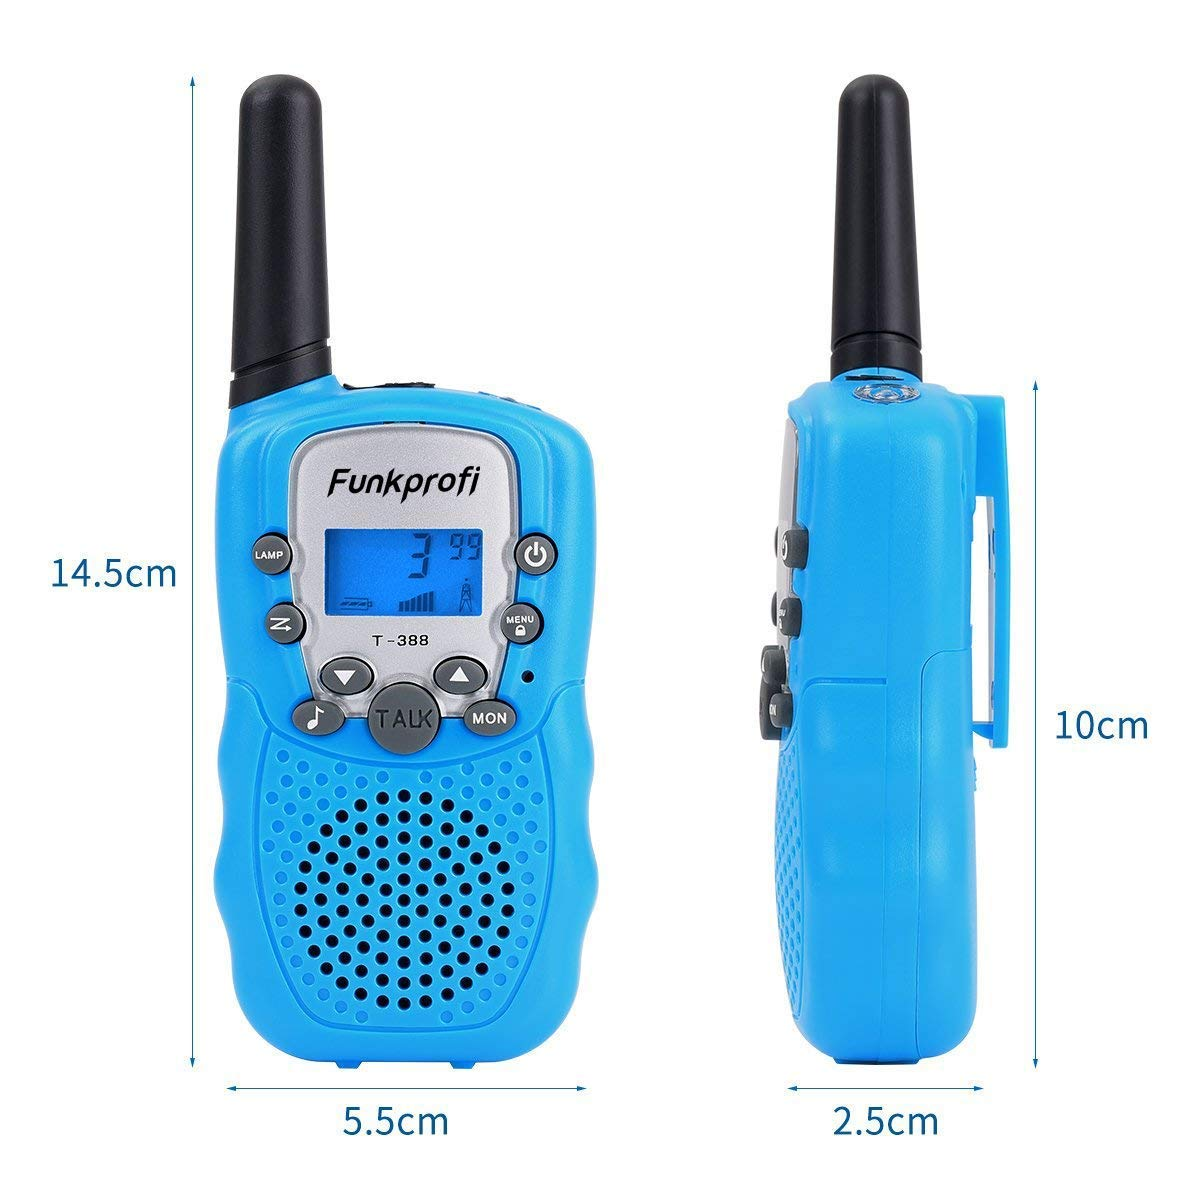 Funkprofi 3 Pack Walkie Talkies for Kids 22 Channel Uhf FRS/GMRS 2 Way Radio, Toy Gifts for Boys and Girls Birthday, Outdoor Adventure, Camping, Hiking by Funkprofi (Image #3)